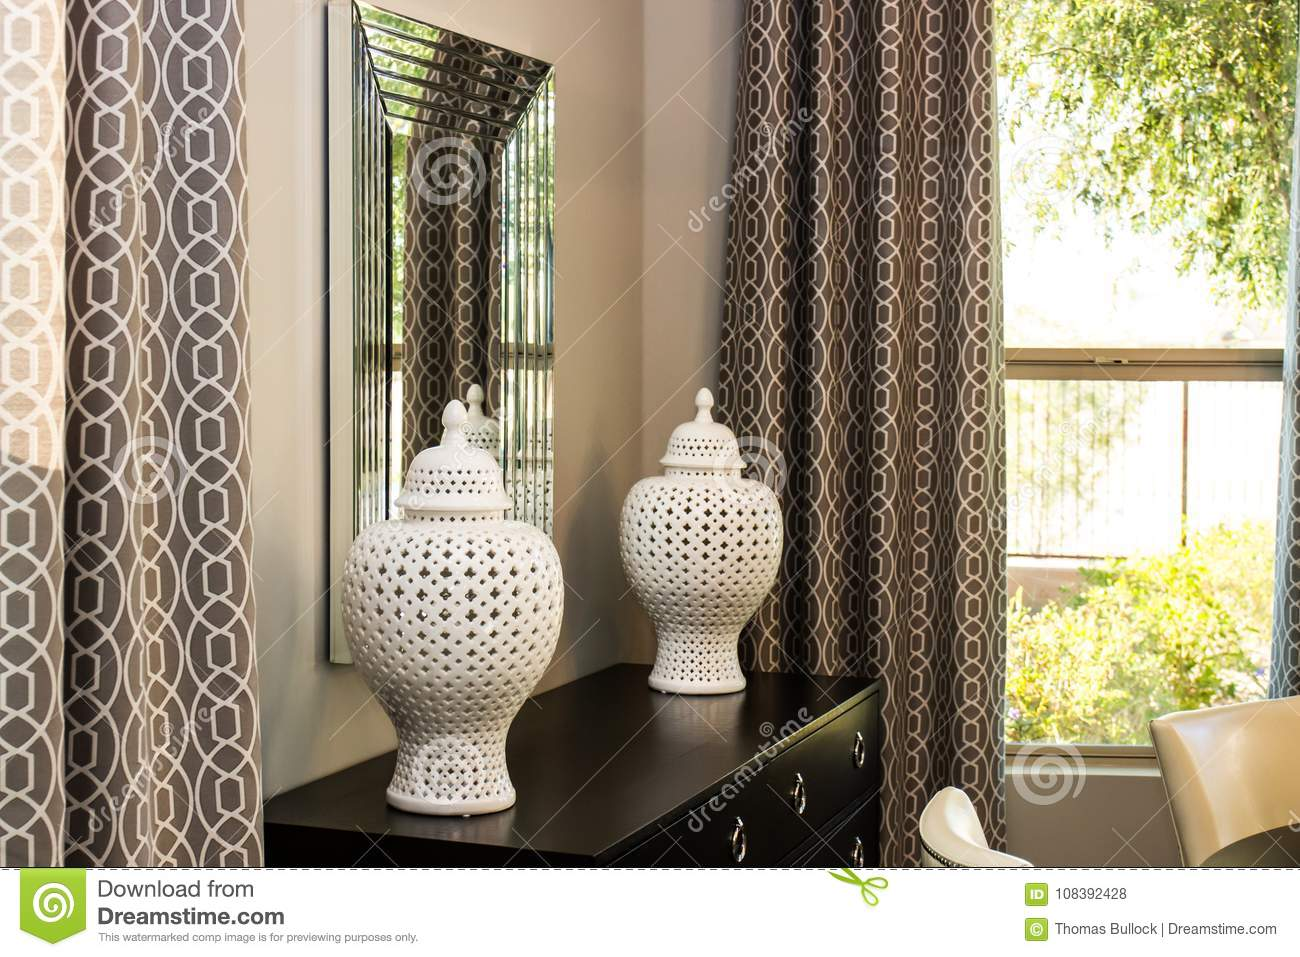 Dining Room Vases On Cabinet Stock Photo Image Of Bushes Mirror 108392428